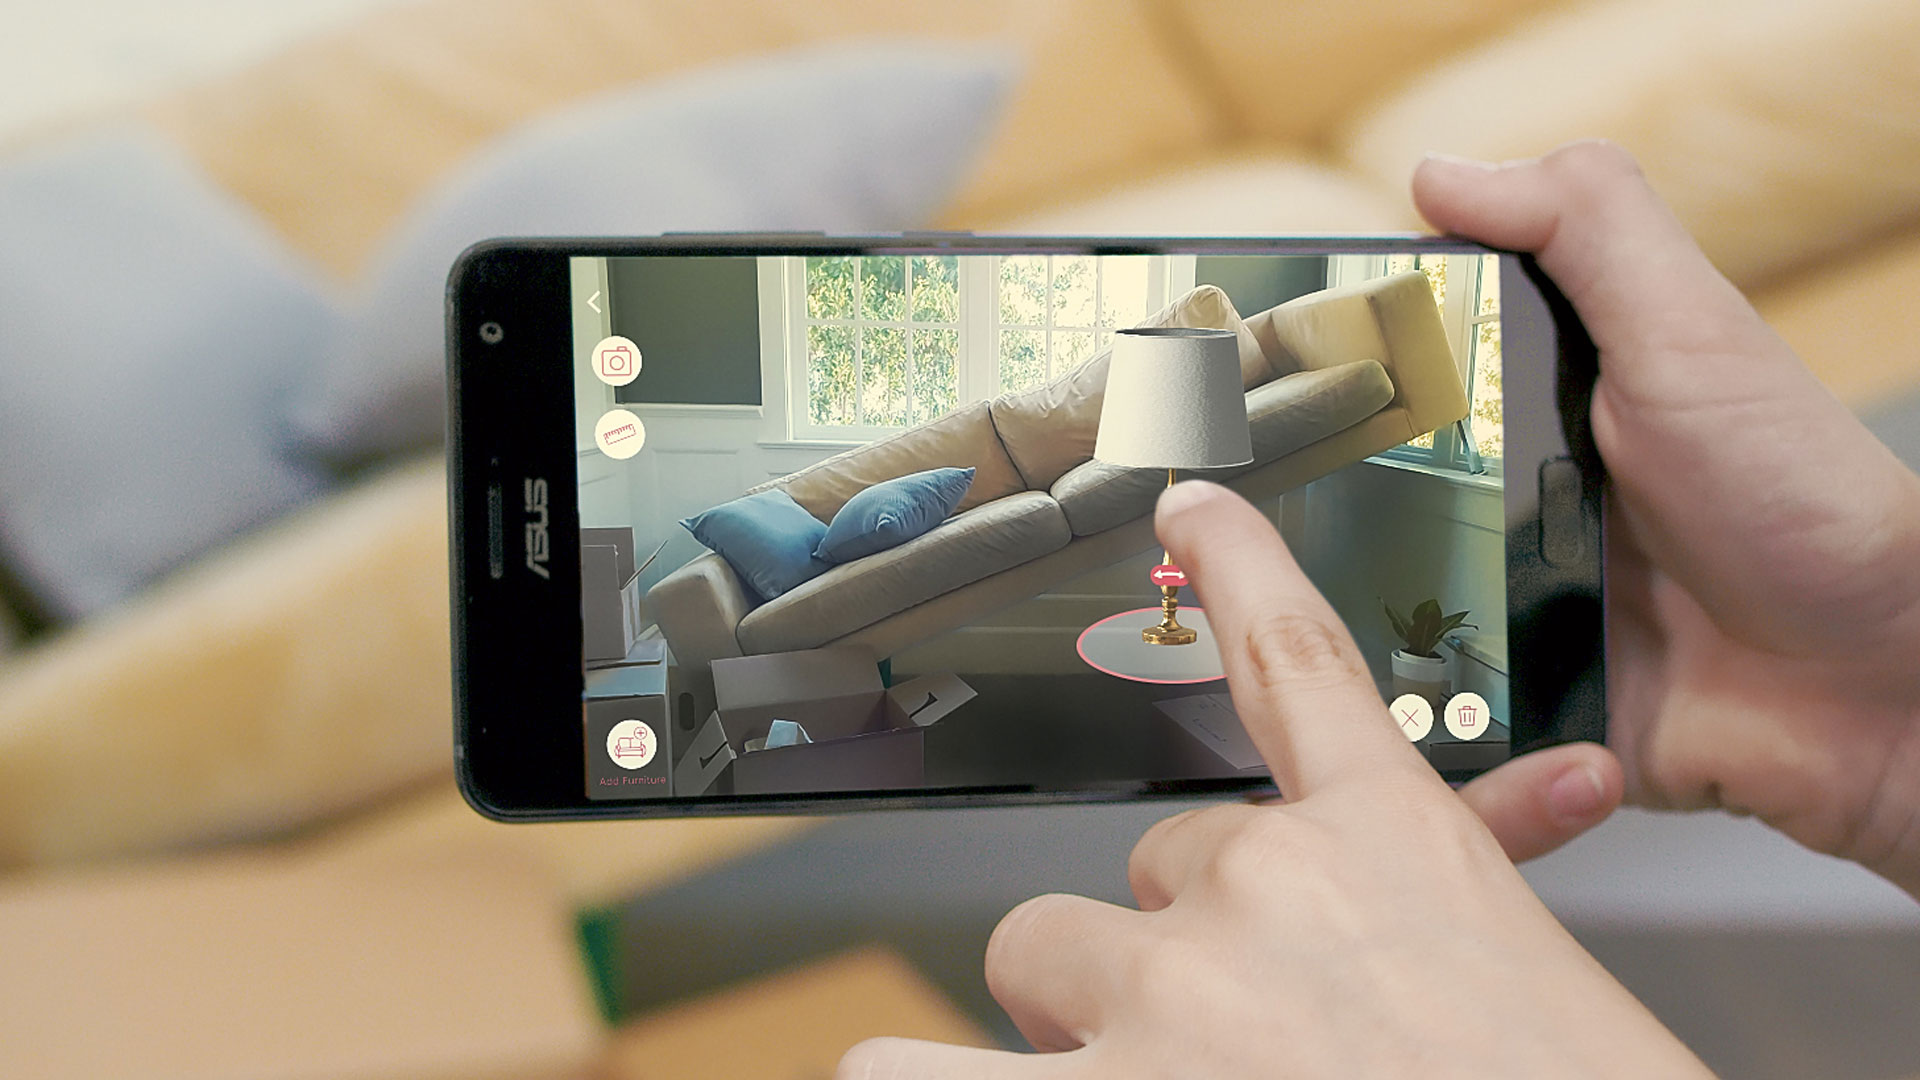 Photo of Google laminated reality - now with a new approach